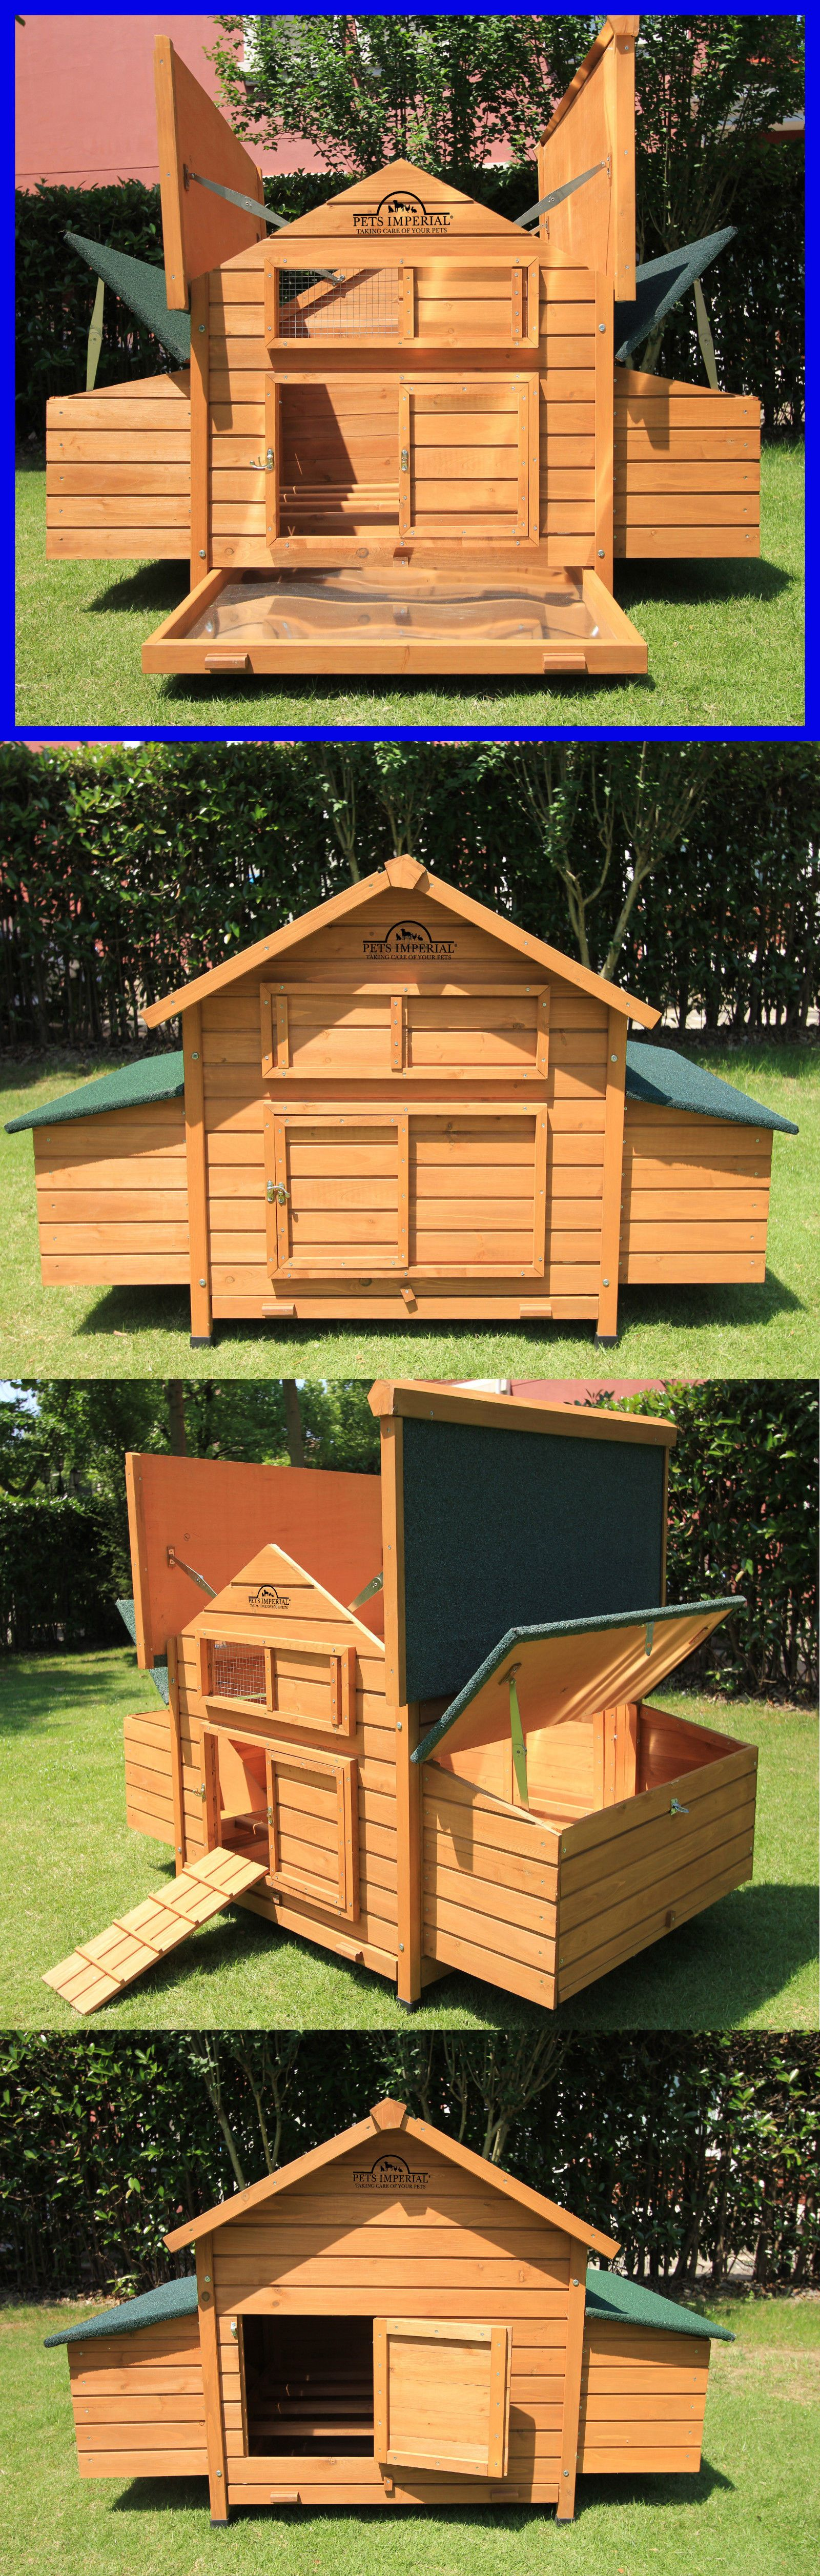 wood in shipping product insulated products overstock hutch pet rabbit trixie free today supplies solid